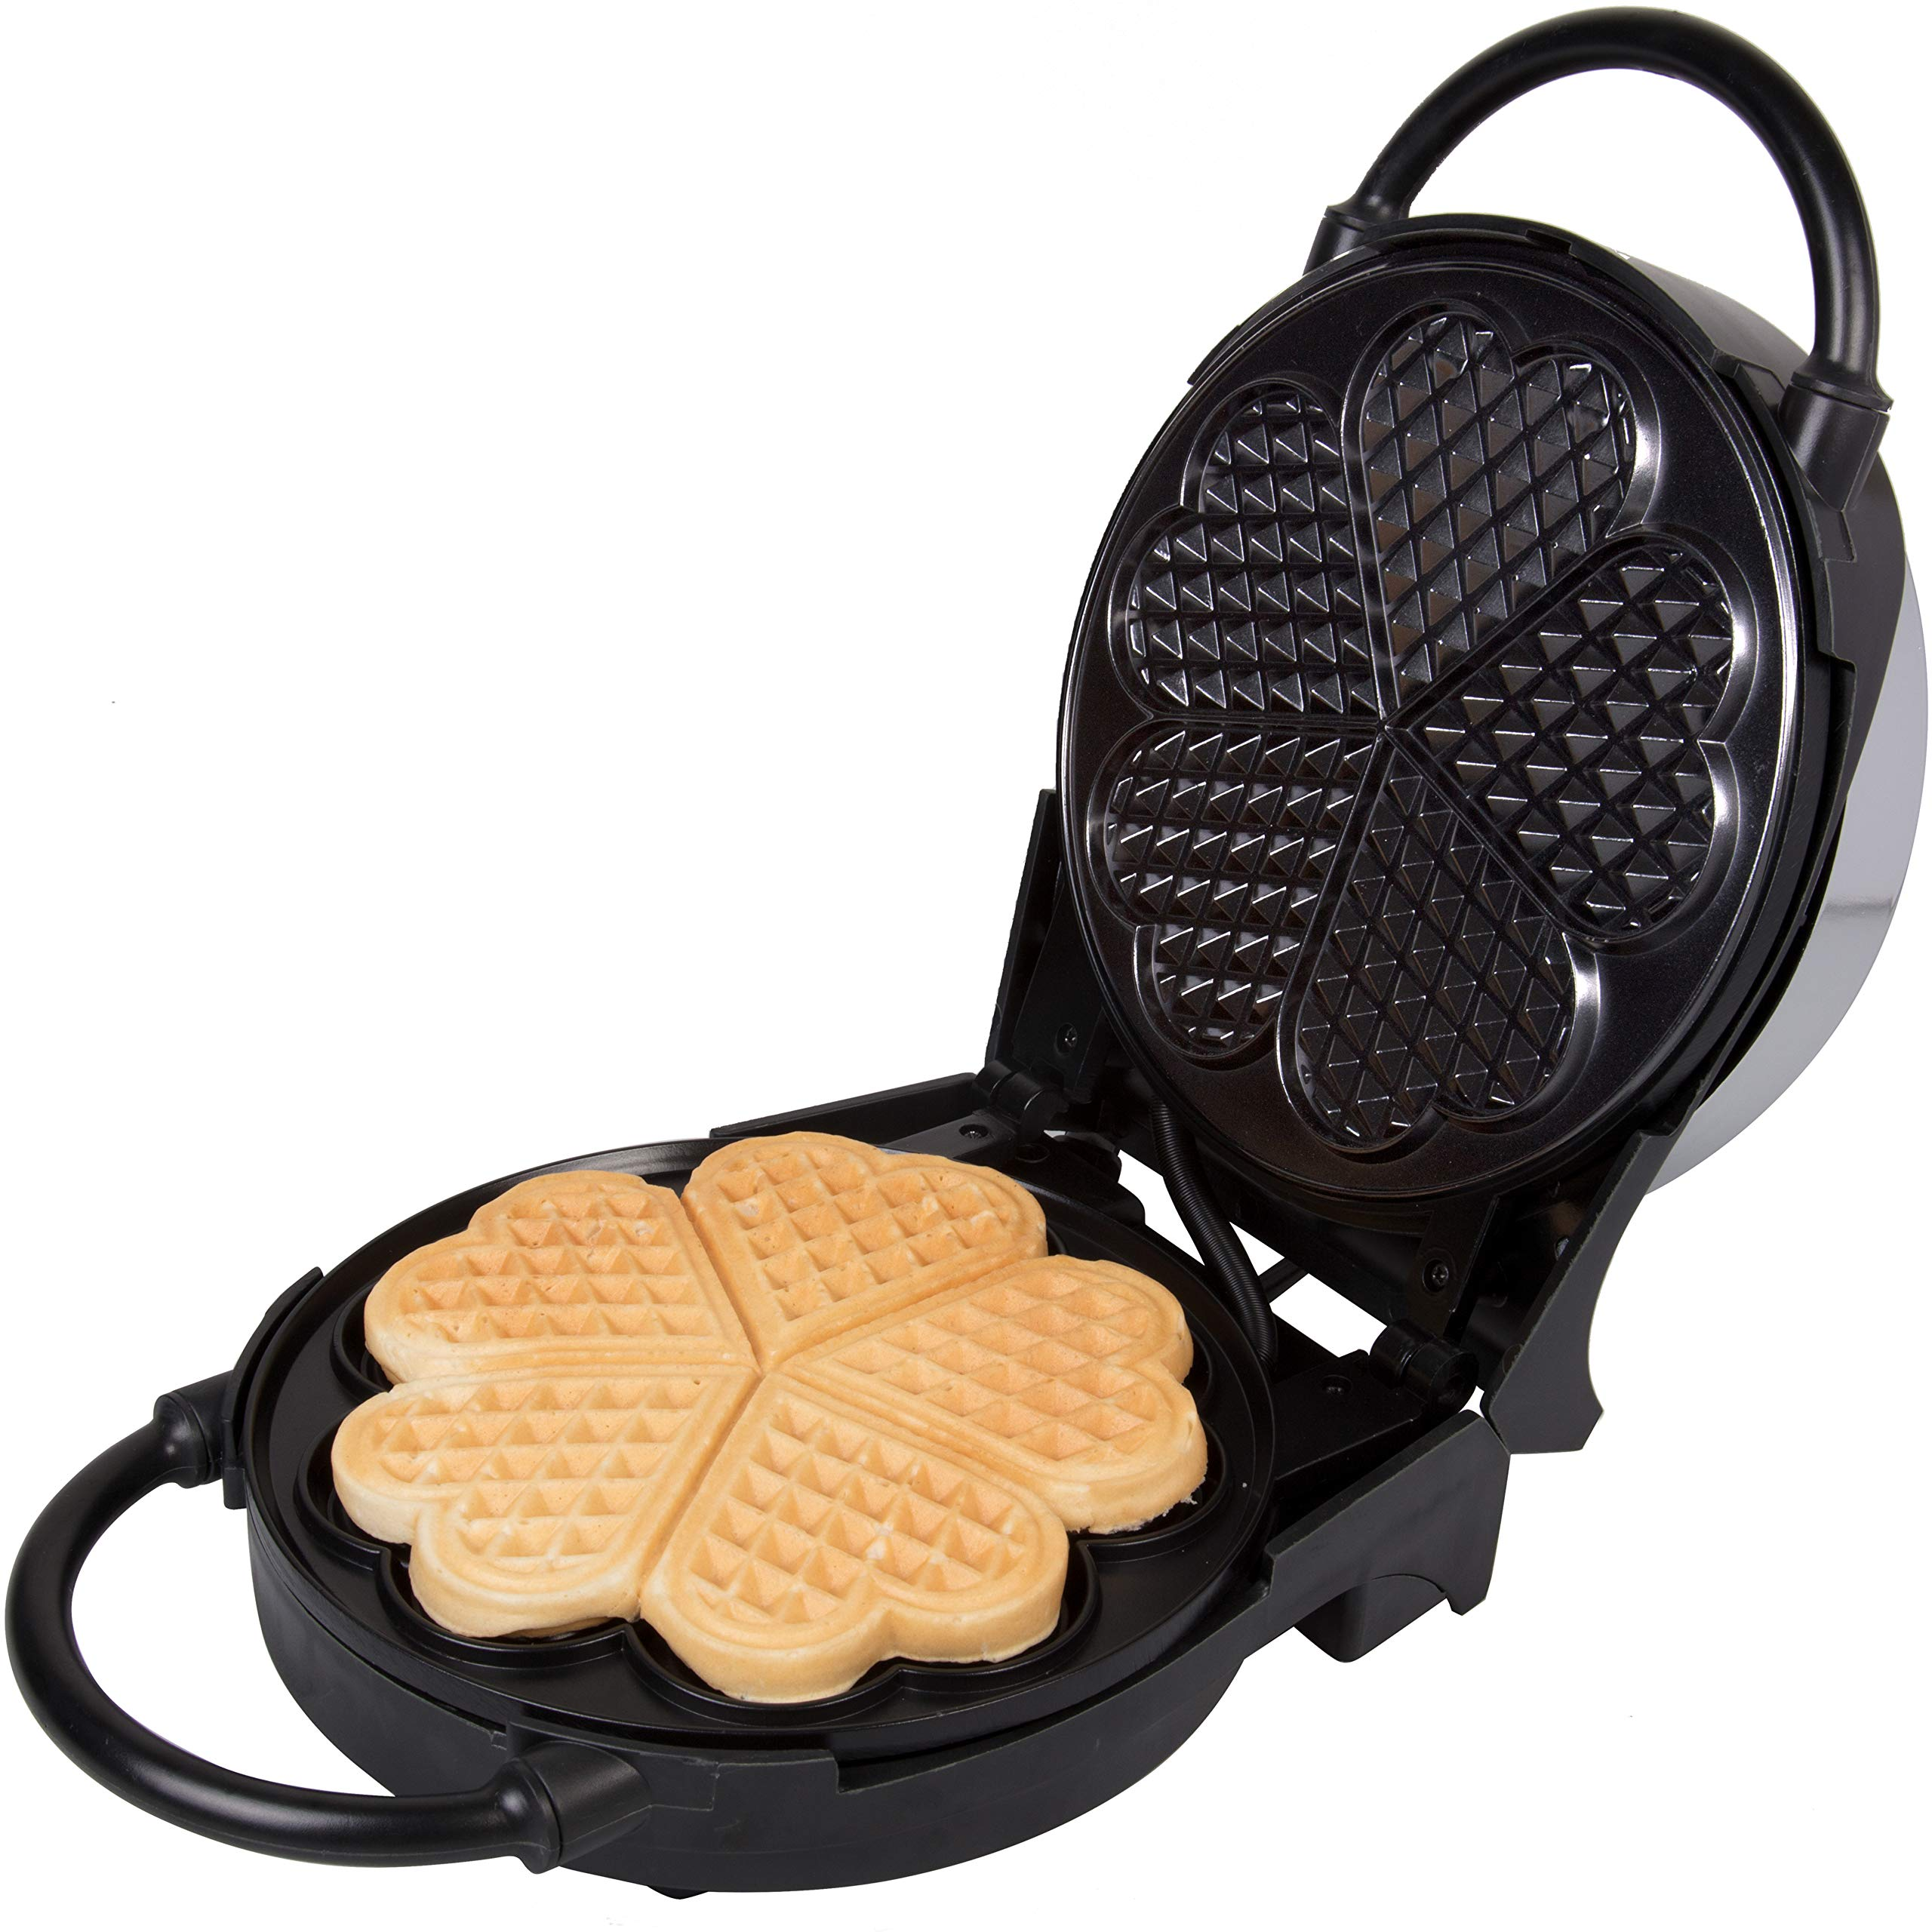 Heart Waffle Maker- Non-Stick 5-Heart Waffler Iron Griddle w Adjustable Browning Control